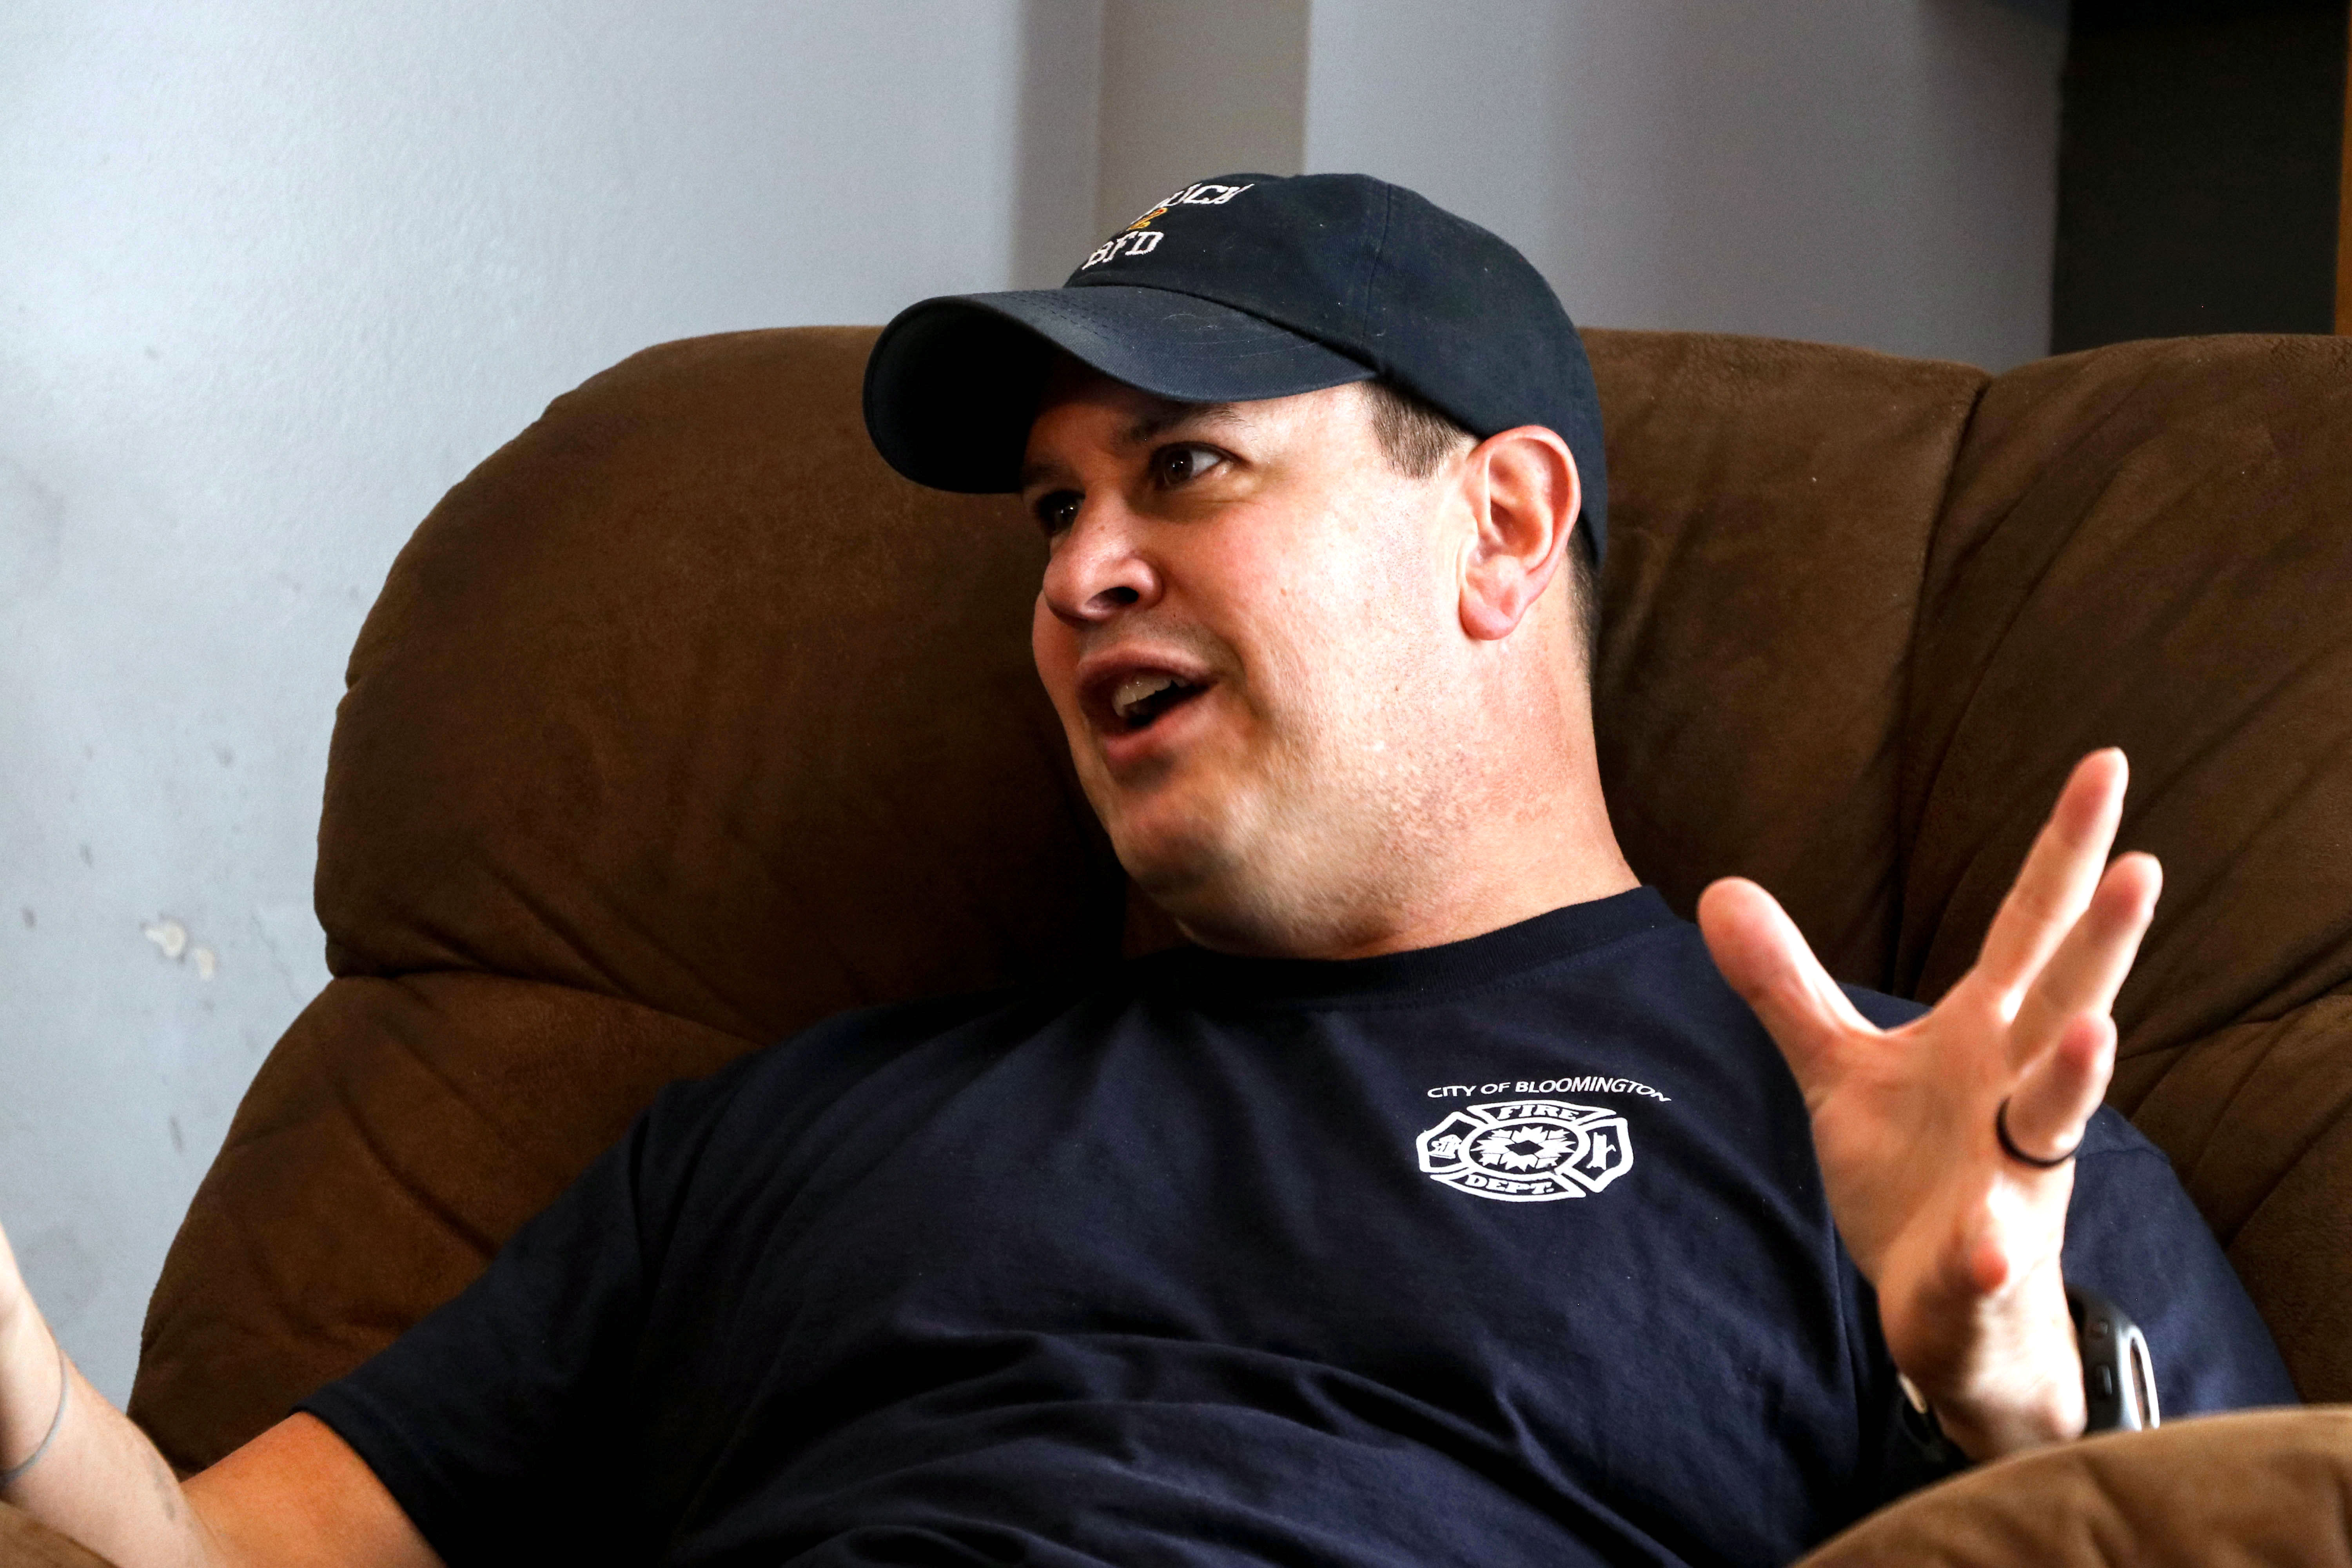 Dan Emerick, wearing a blue cap, makes a hand gesture while sitting in a recliner and looking to his right.